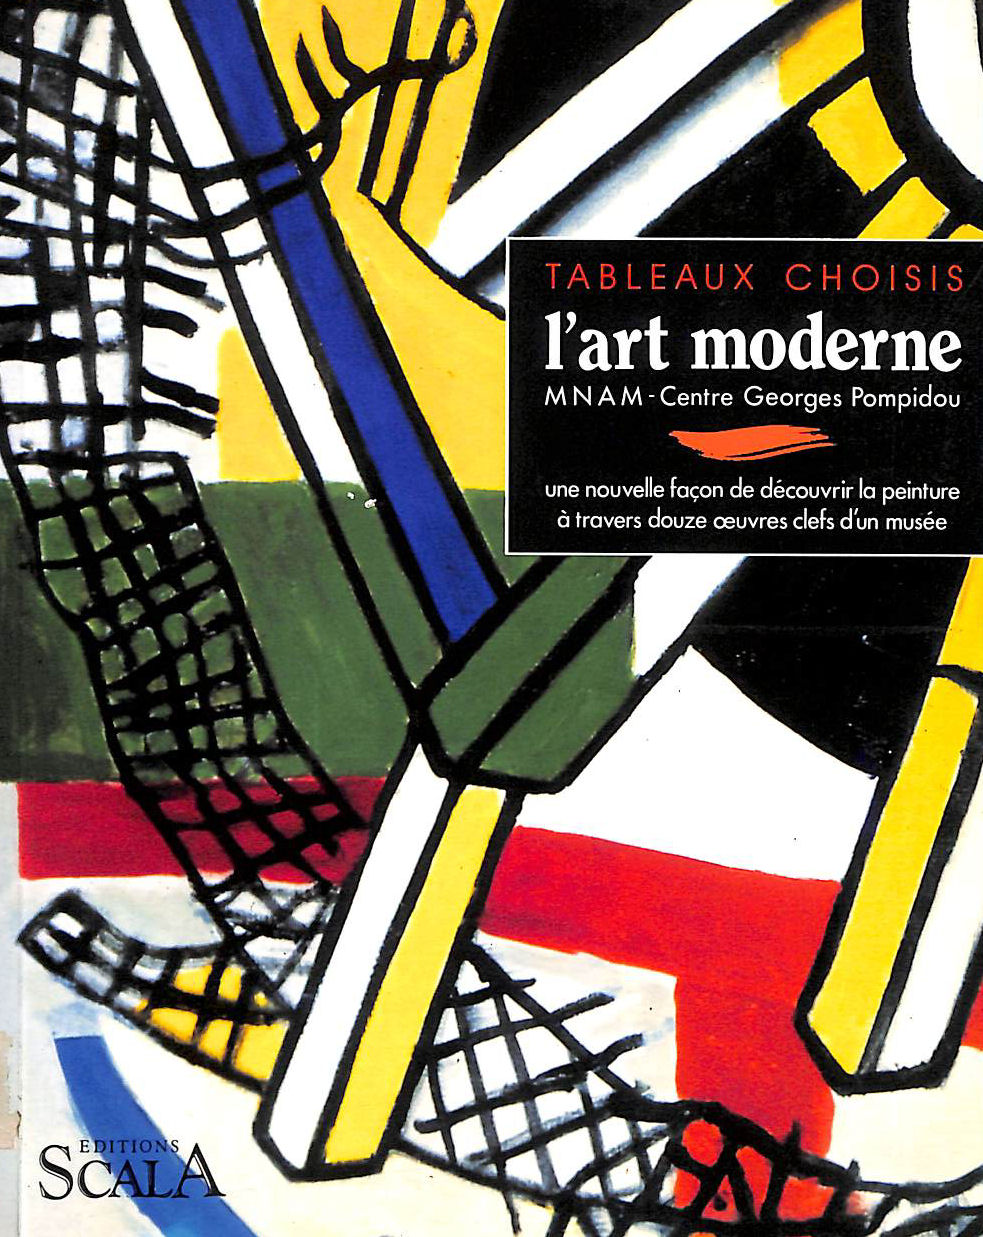 Image for Lart moderne: MNAM  Centre Georges Pompidou (Tableaux choisis)